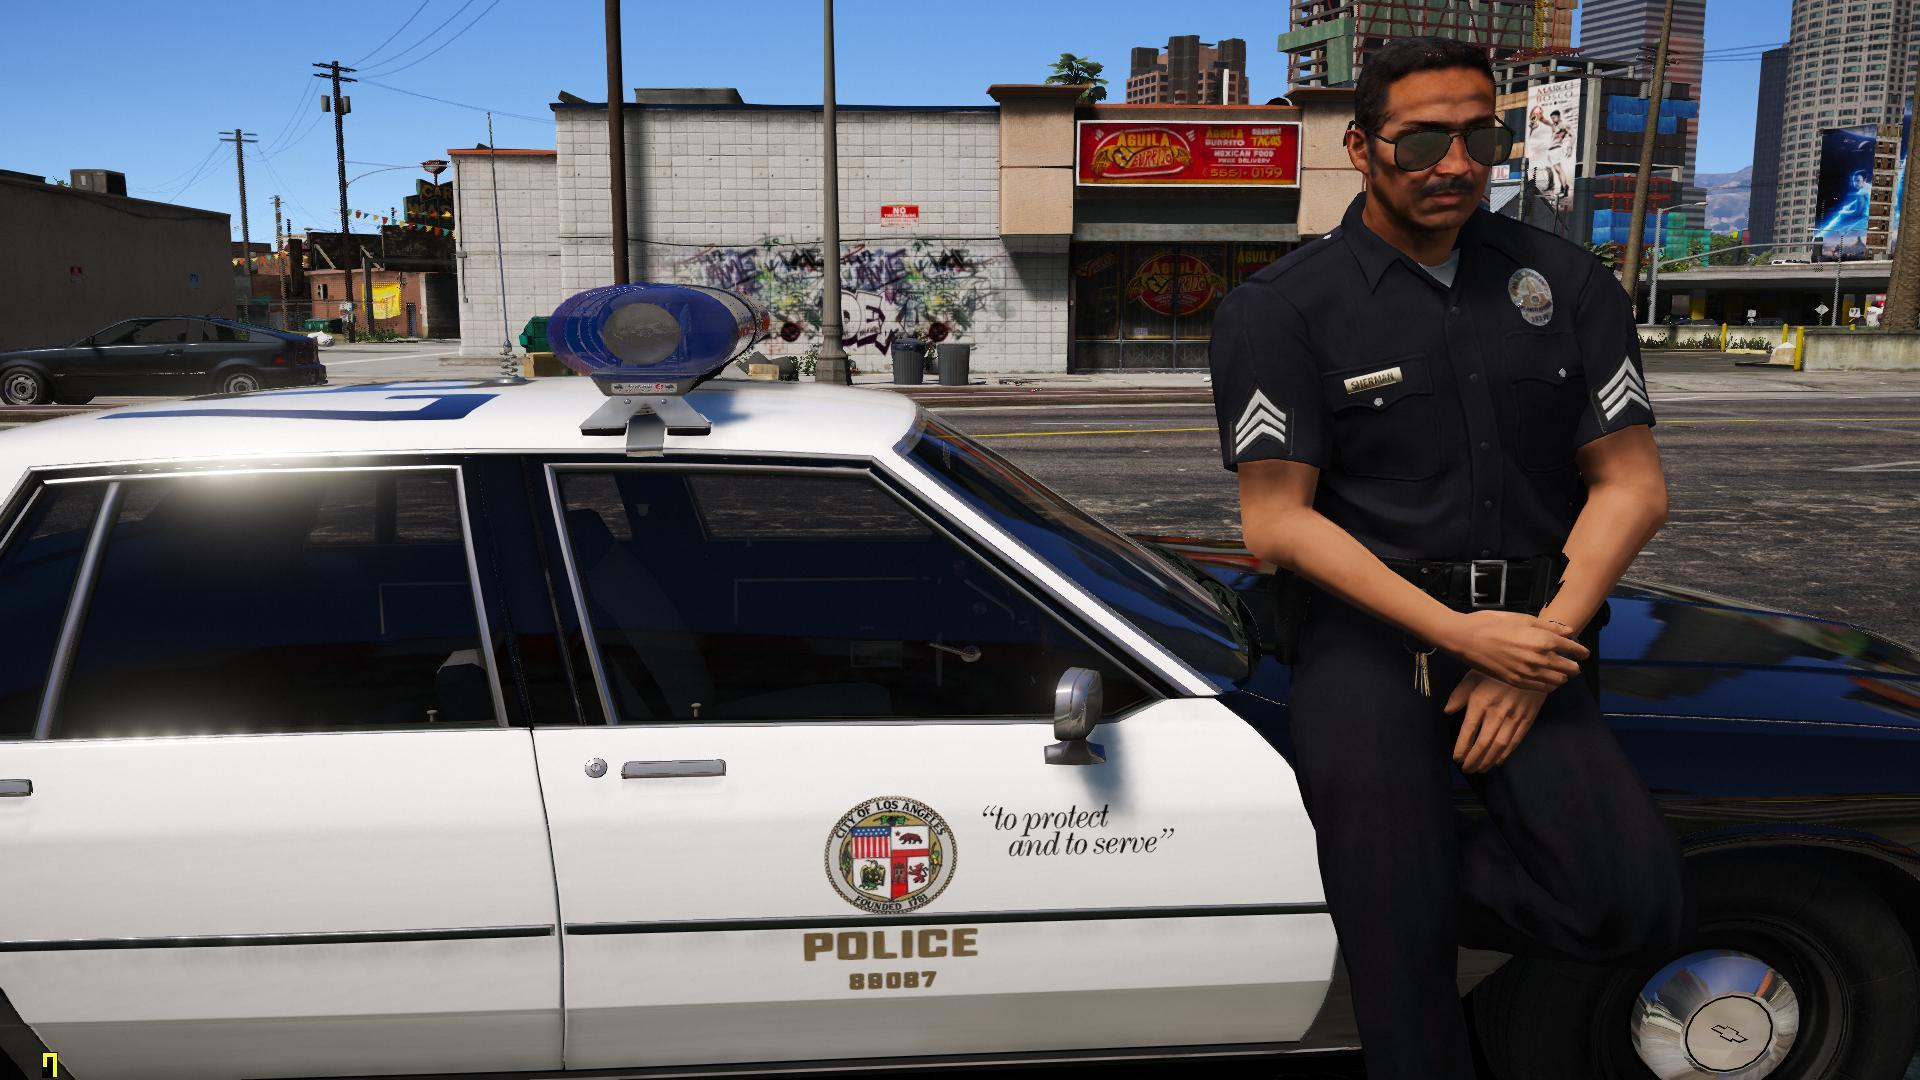 lapd 1980s retro officer gta5. Black Bedroom Furniture Sets. Home Design Ideas